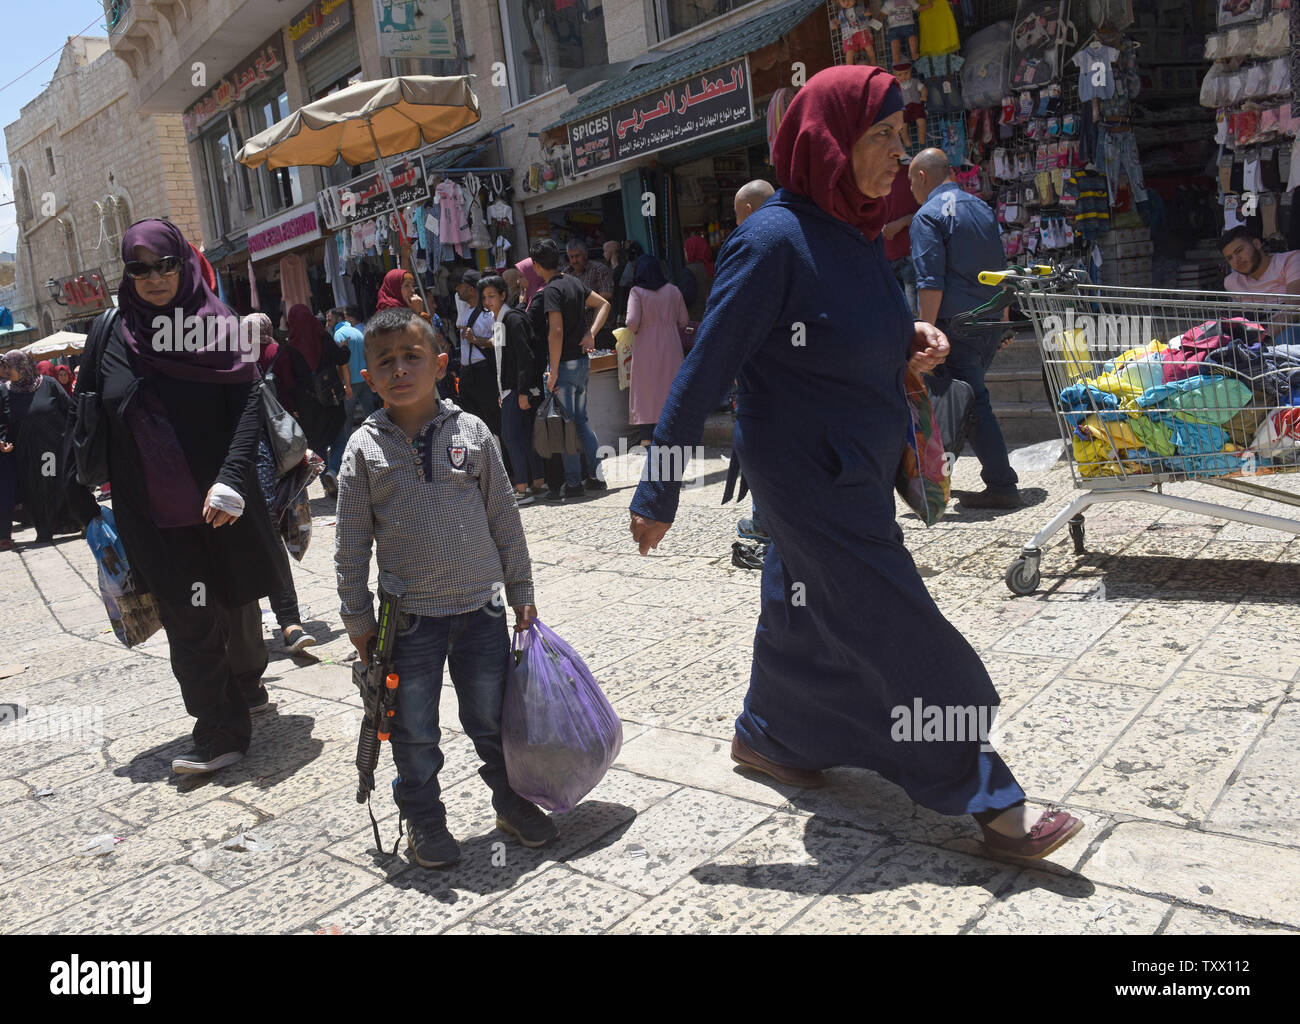 A Palestinian boy holds a toy gun before the Islamic holiday of Eid al-Fitr, in the market in Bethlehem, West Bank, June 13, 2018. Muslims around the world will celebrate the three day holiday of  Eid al-Fitr ,which marks the end of the Muslim holy month of fasting Ramadan.  Photo by Debbie Hill/UPI - Stock Image